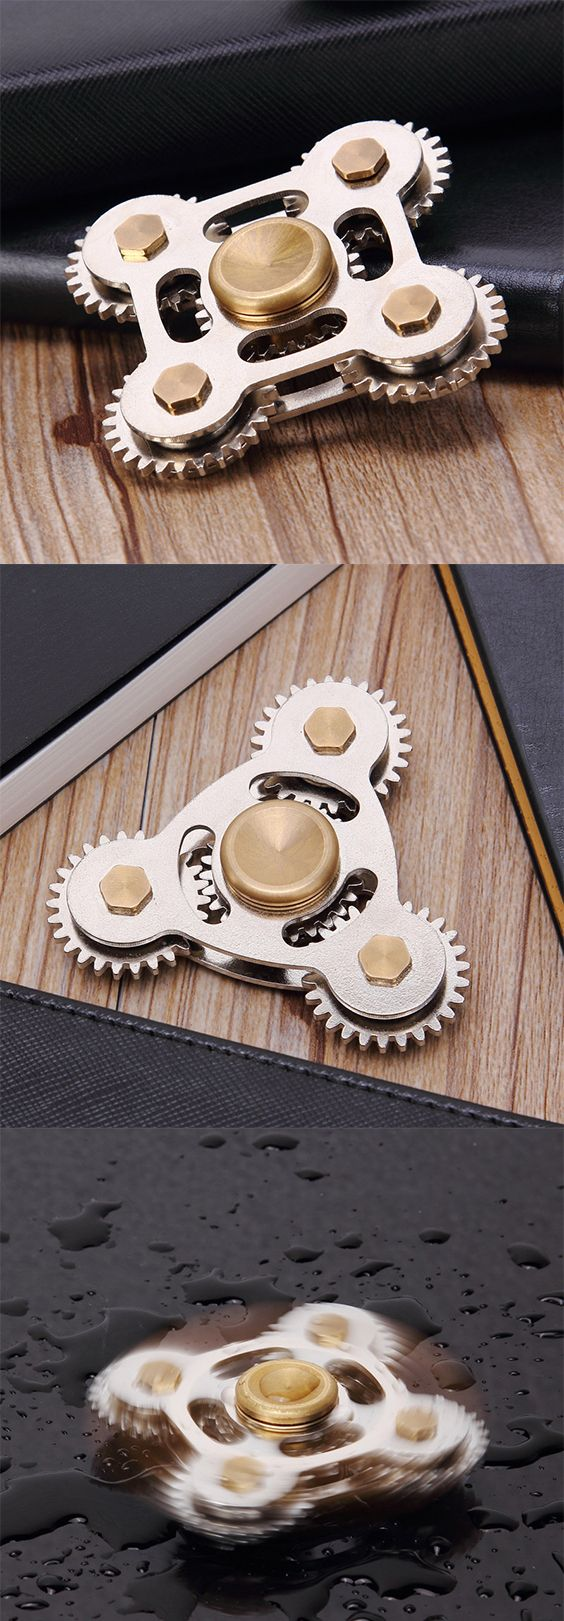 Stress Relief Toy Gears Fingertip Fidget Spinner